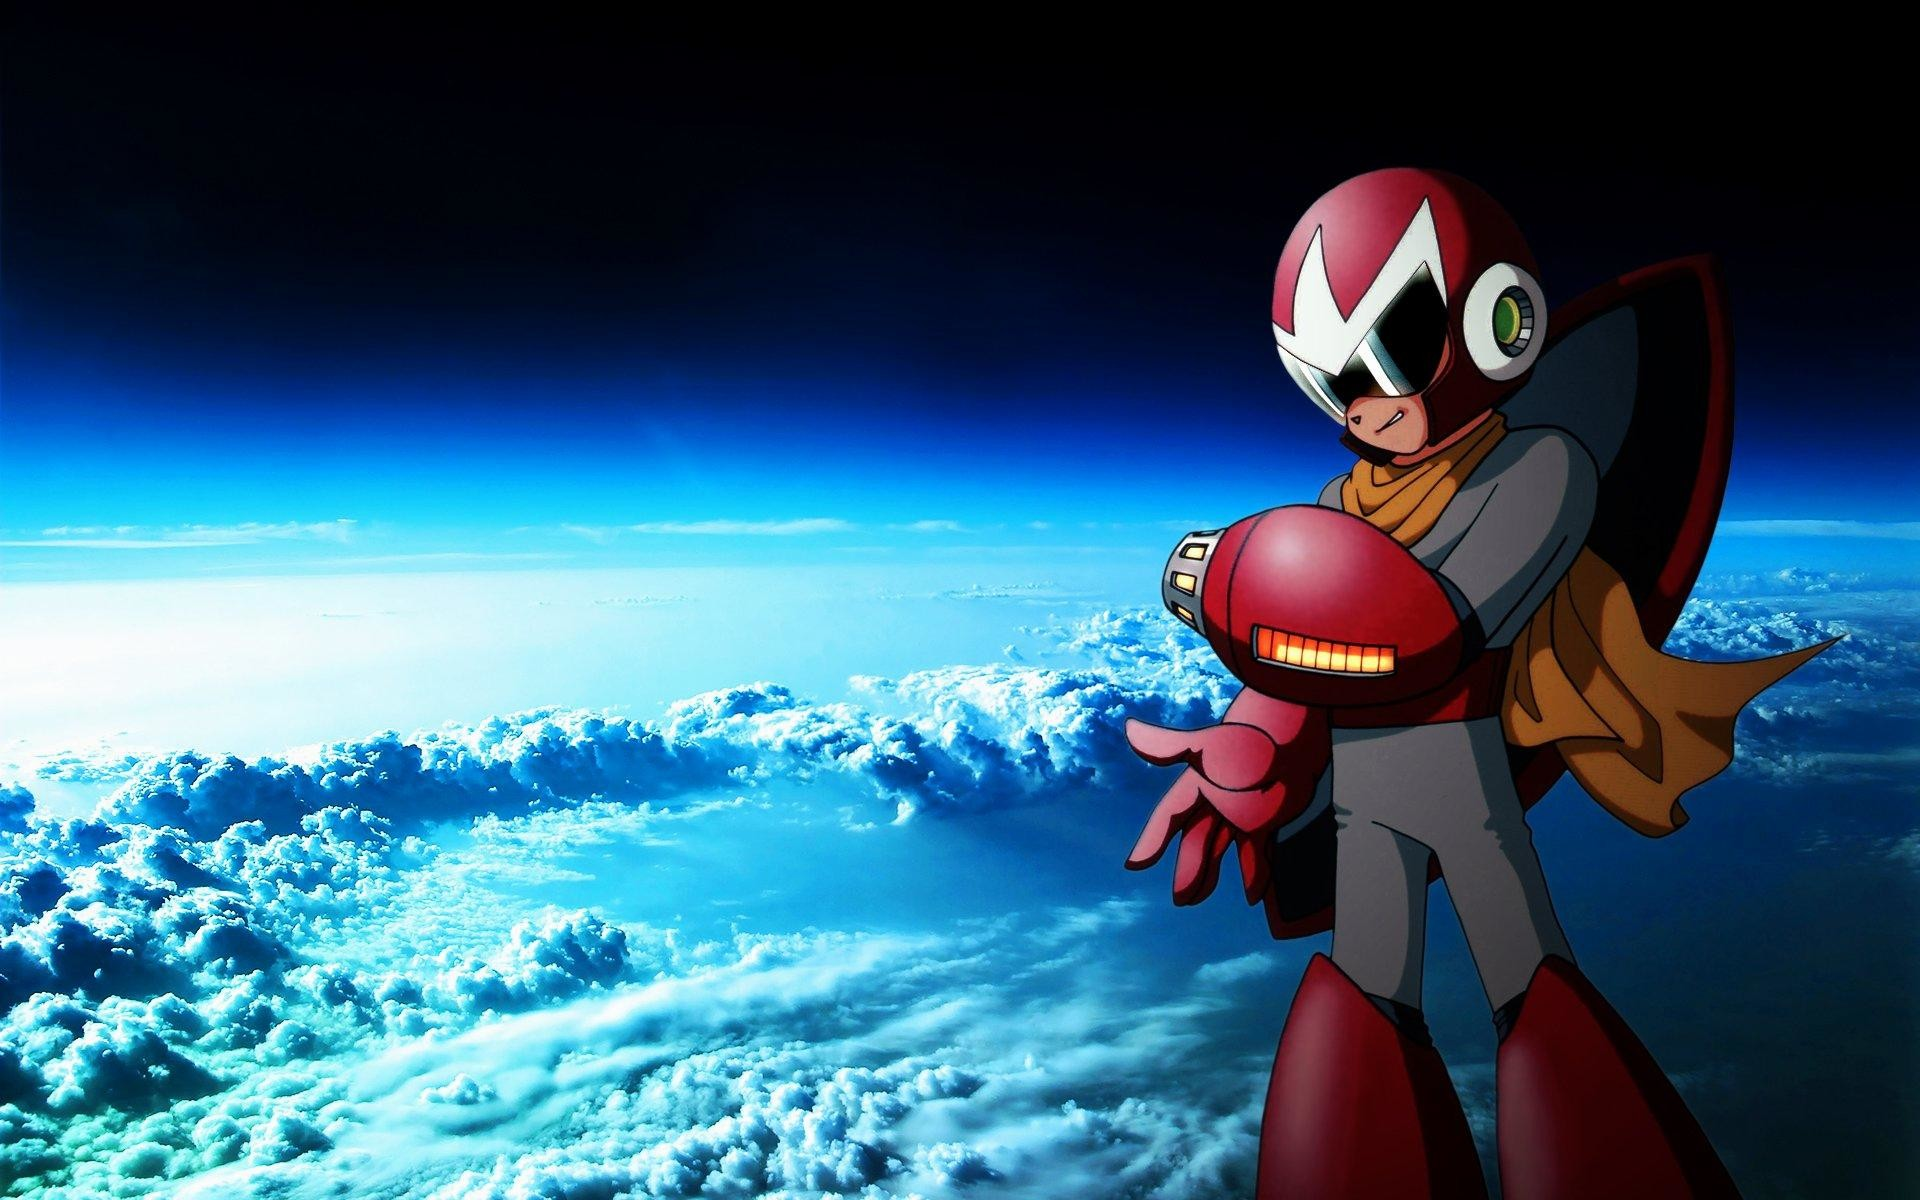 Pictures-Megaman-Backgrounds